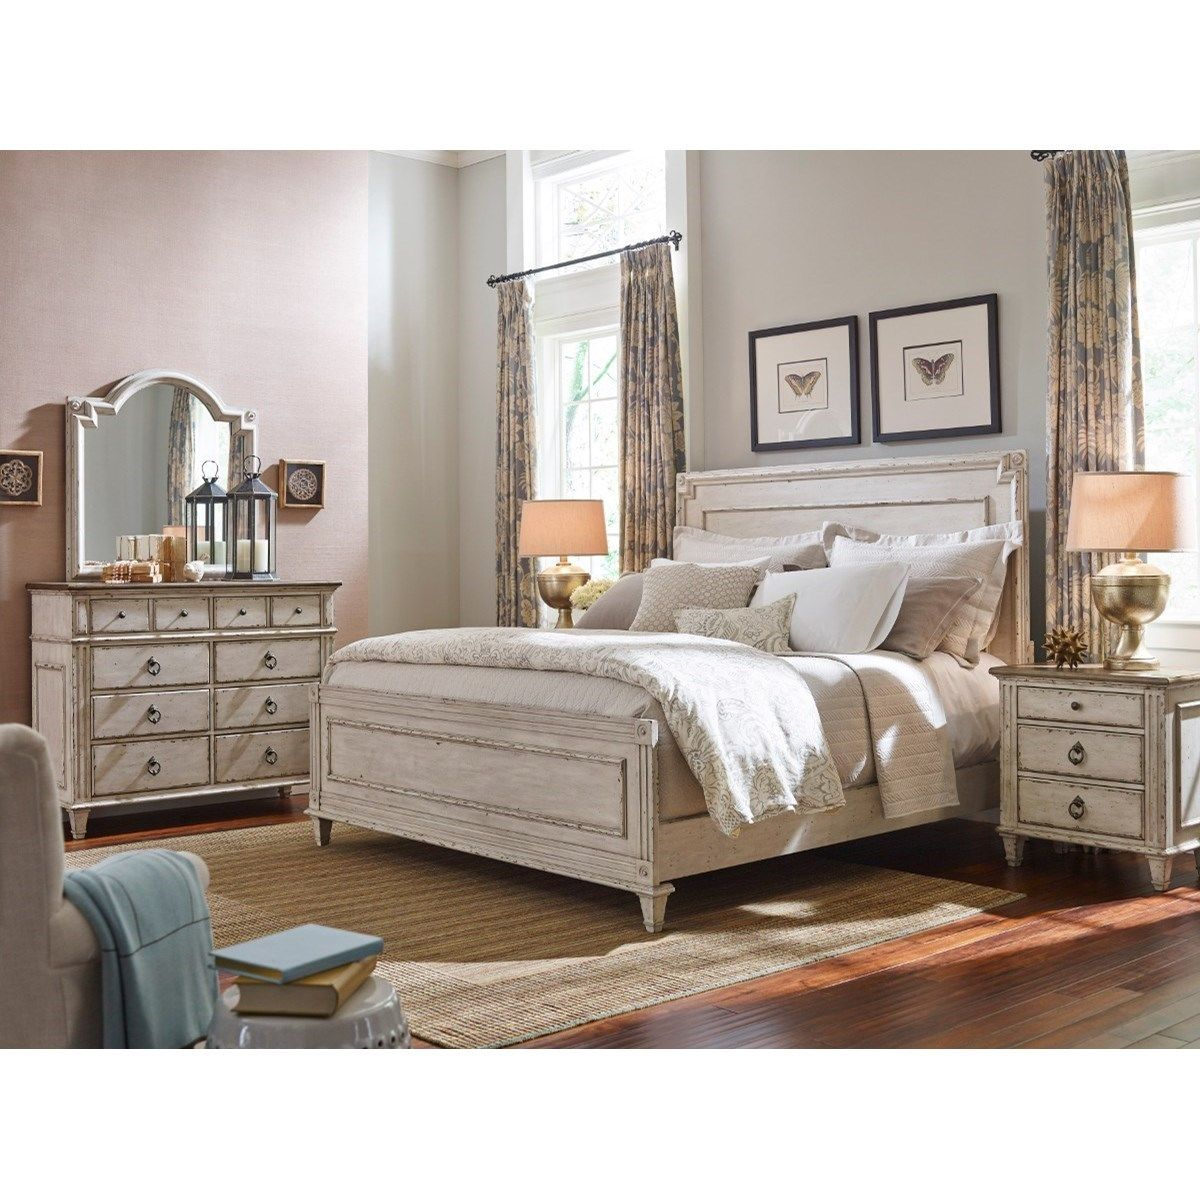 Southbury Queen Bedroom Group By American Drew Available At Www Muellerfurniture Com Or In Store At Mueller Furni Bedroom Set Liberty Furniture Bedroom Panel